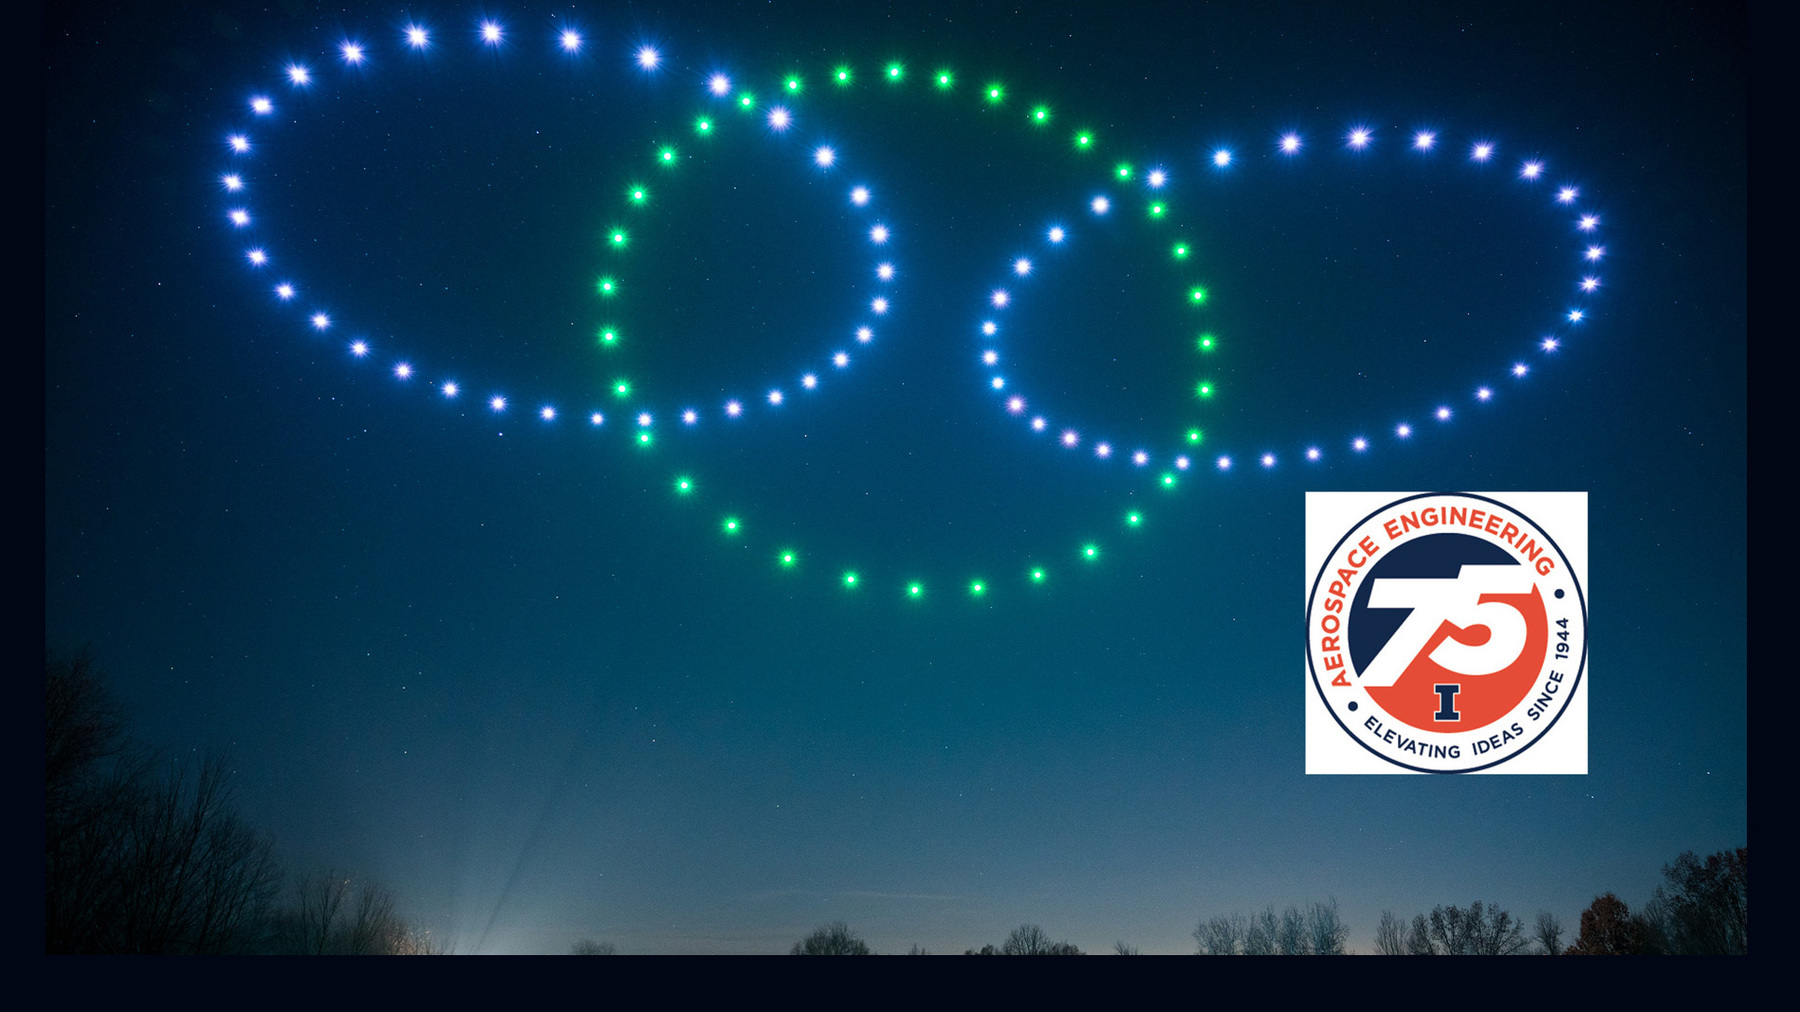 Photo of lighted drones flying in formation provided by Firefly Drone Shows